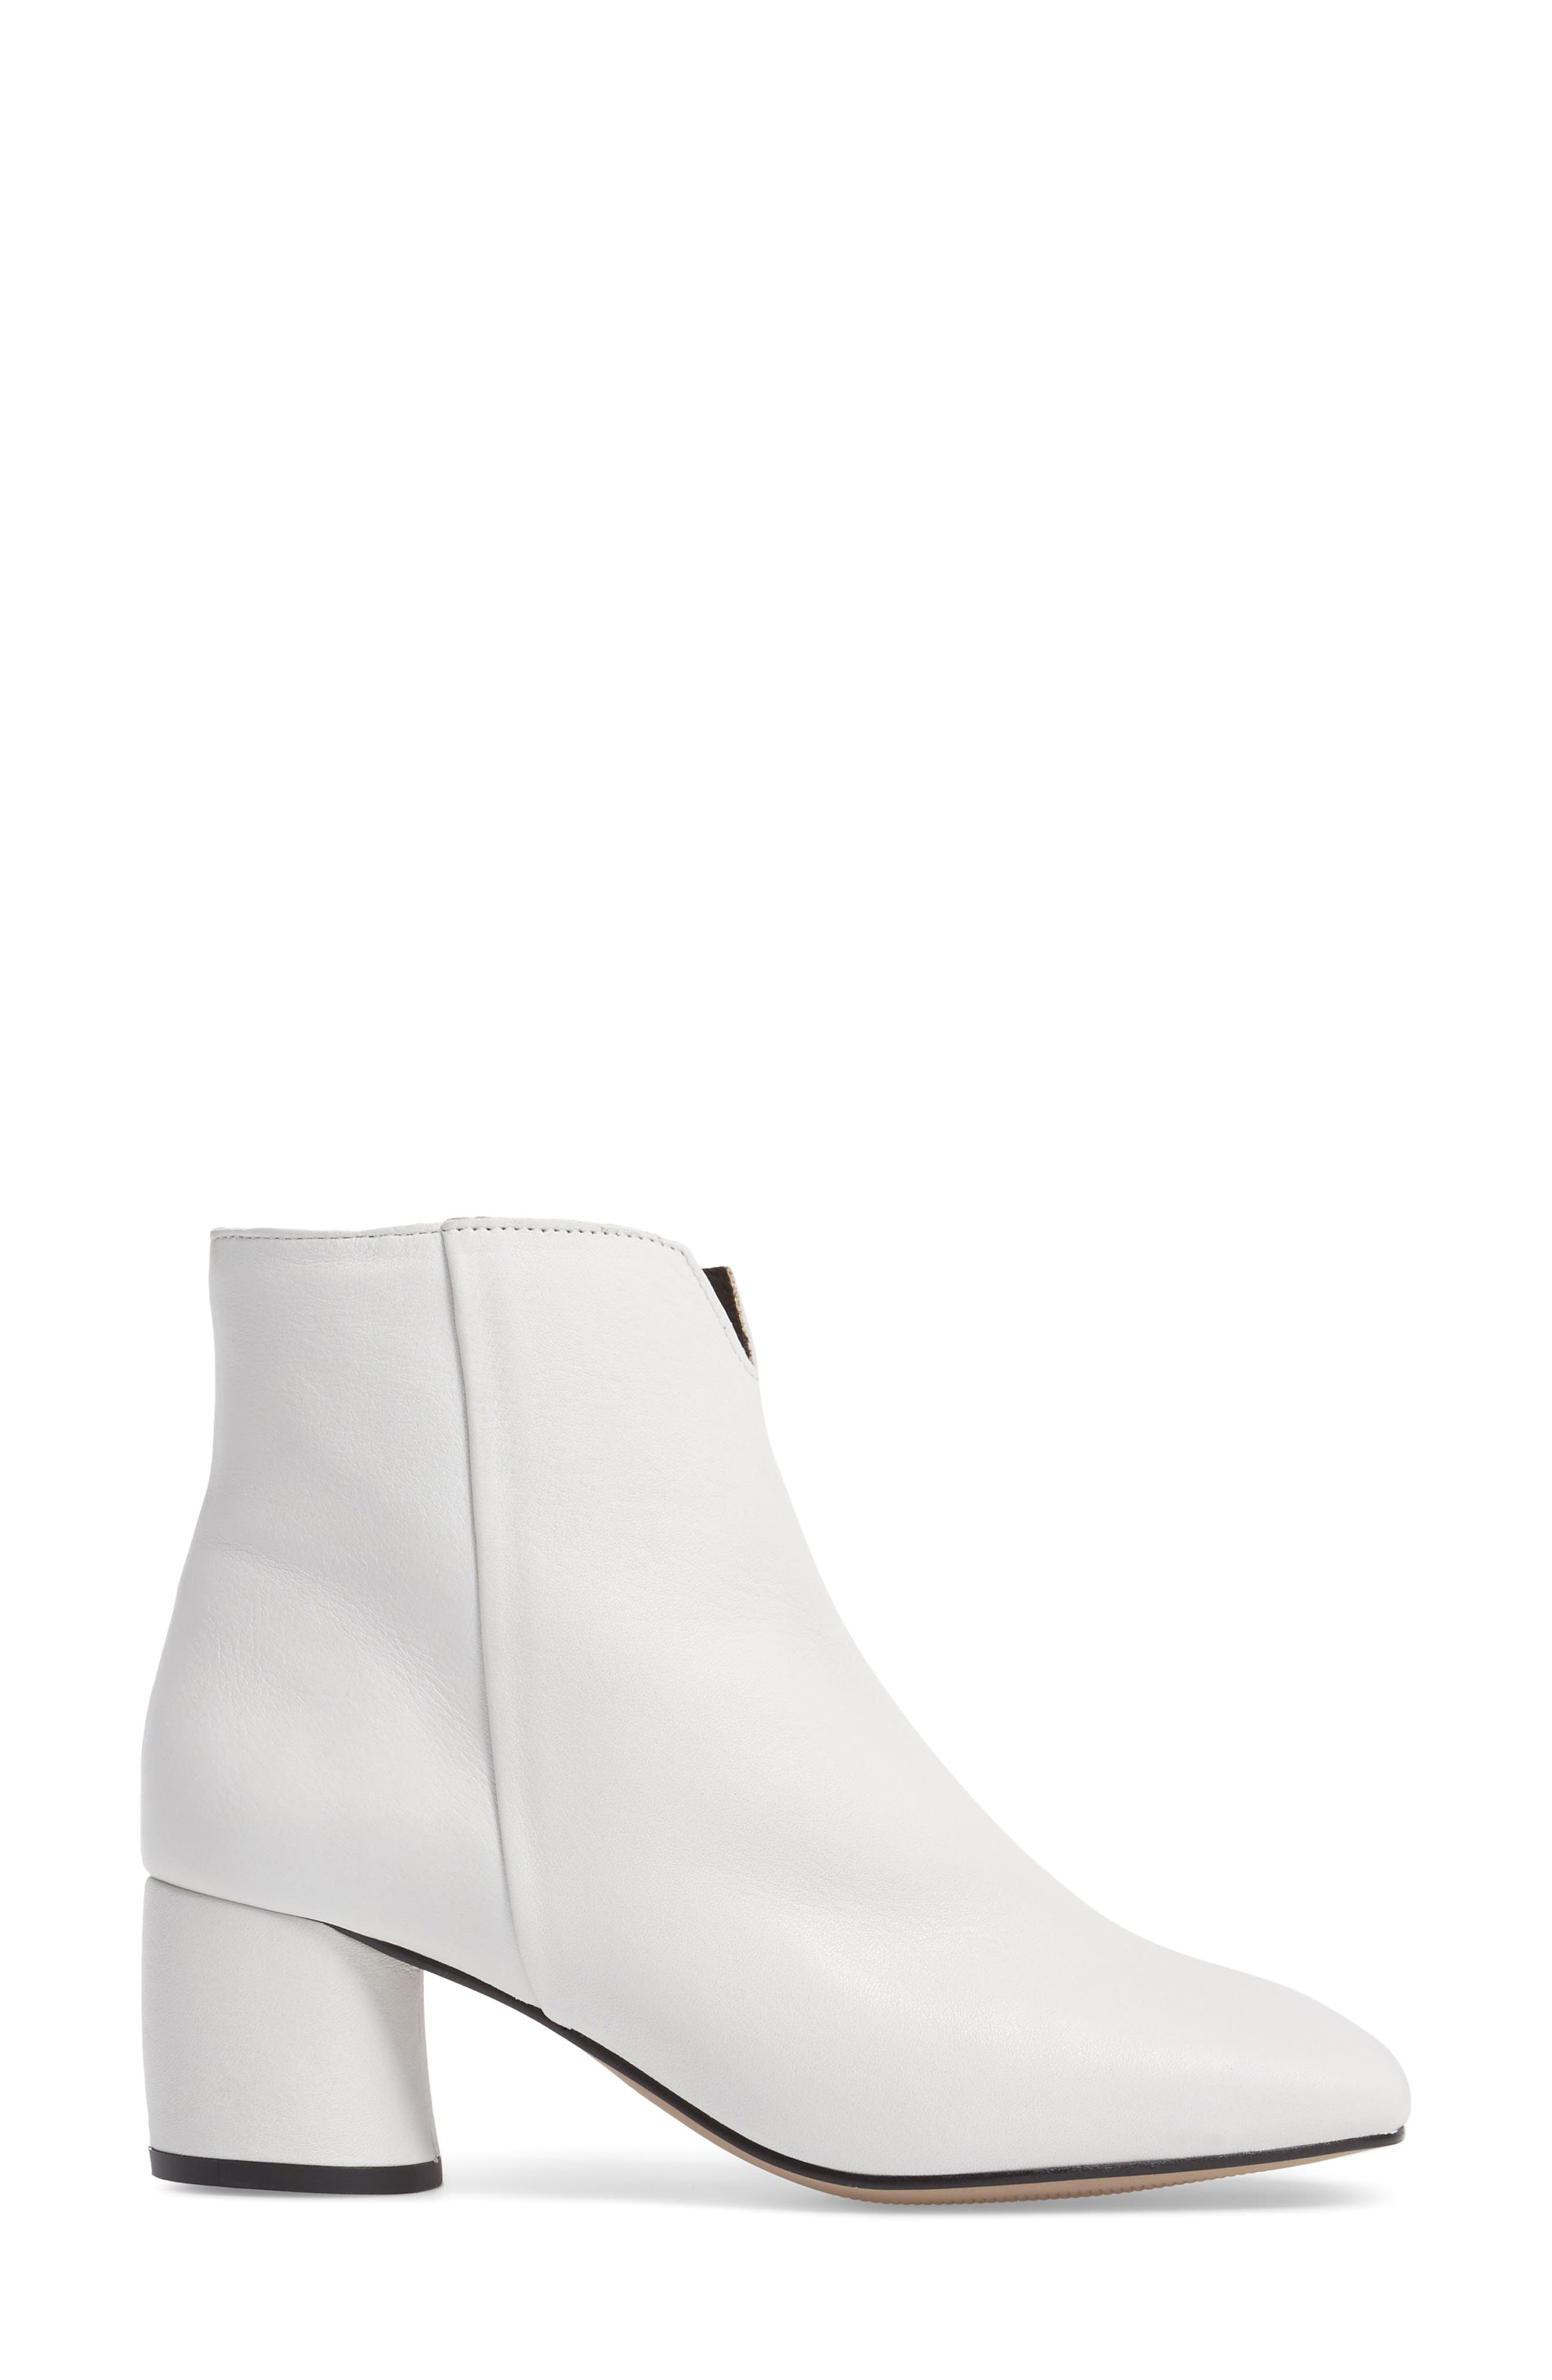 Alternate Image 3  - Topshop Marilo Block Heel Bootie (Women)